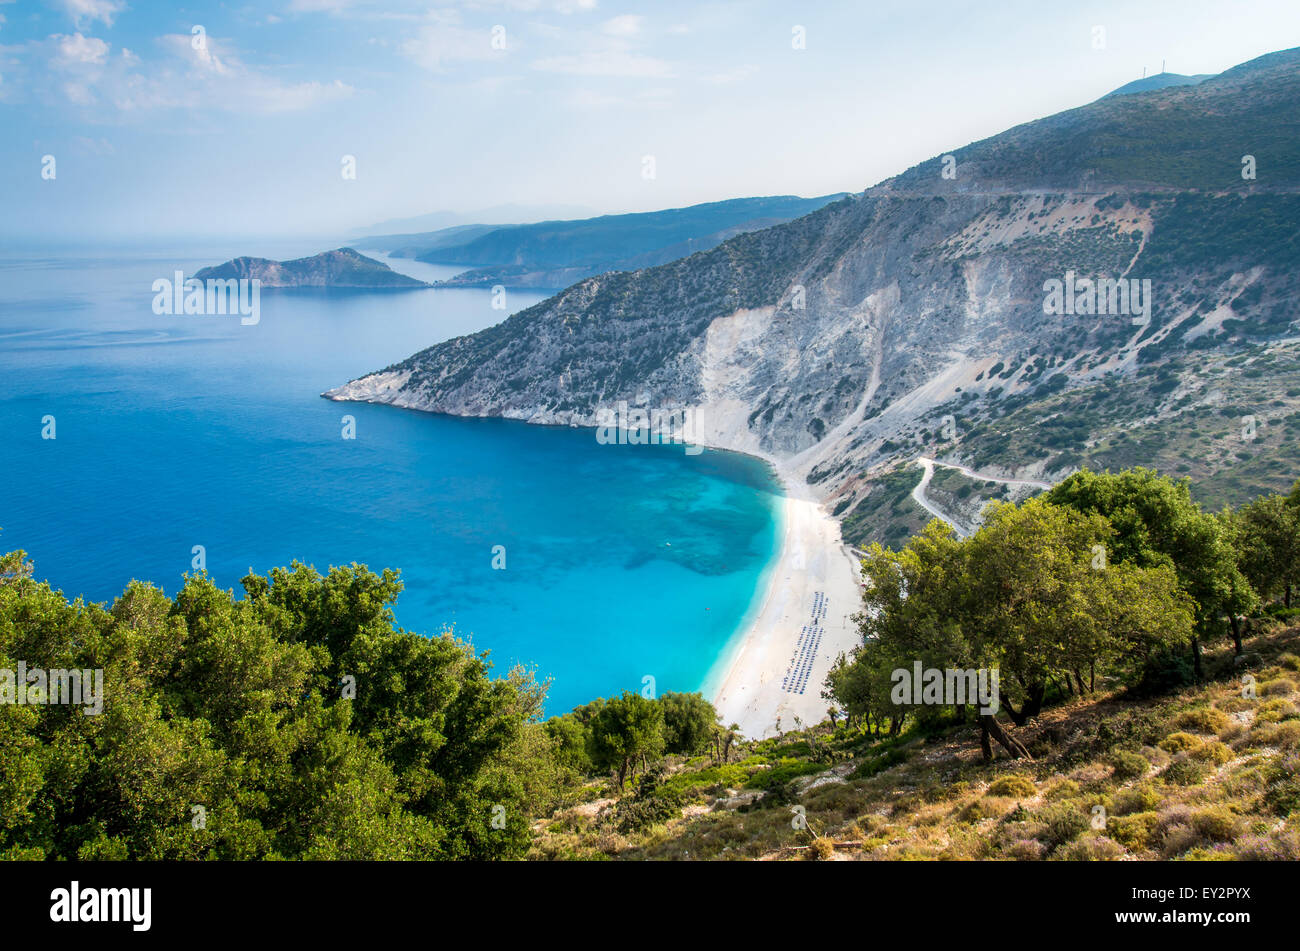 Myrtos beach, Kefalonia island, Greece. Aerial view - Stock Image